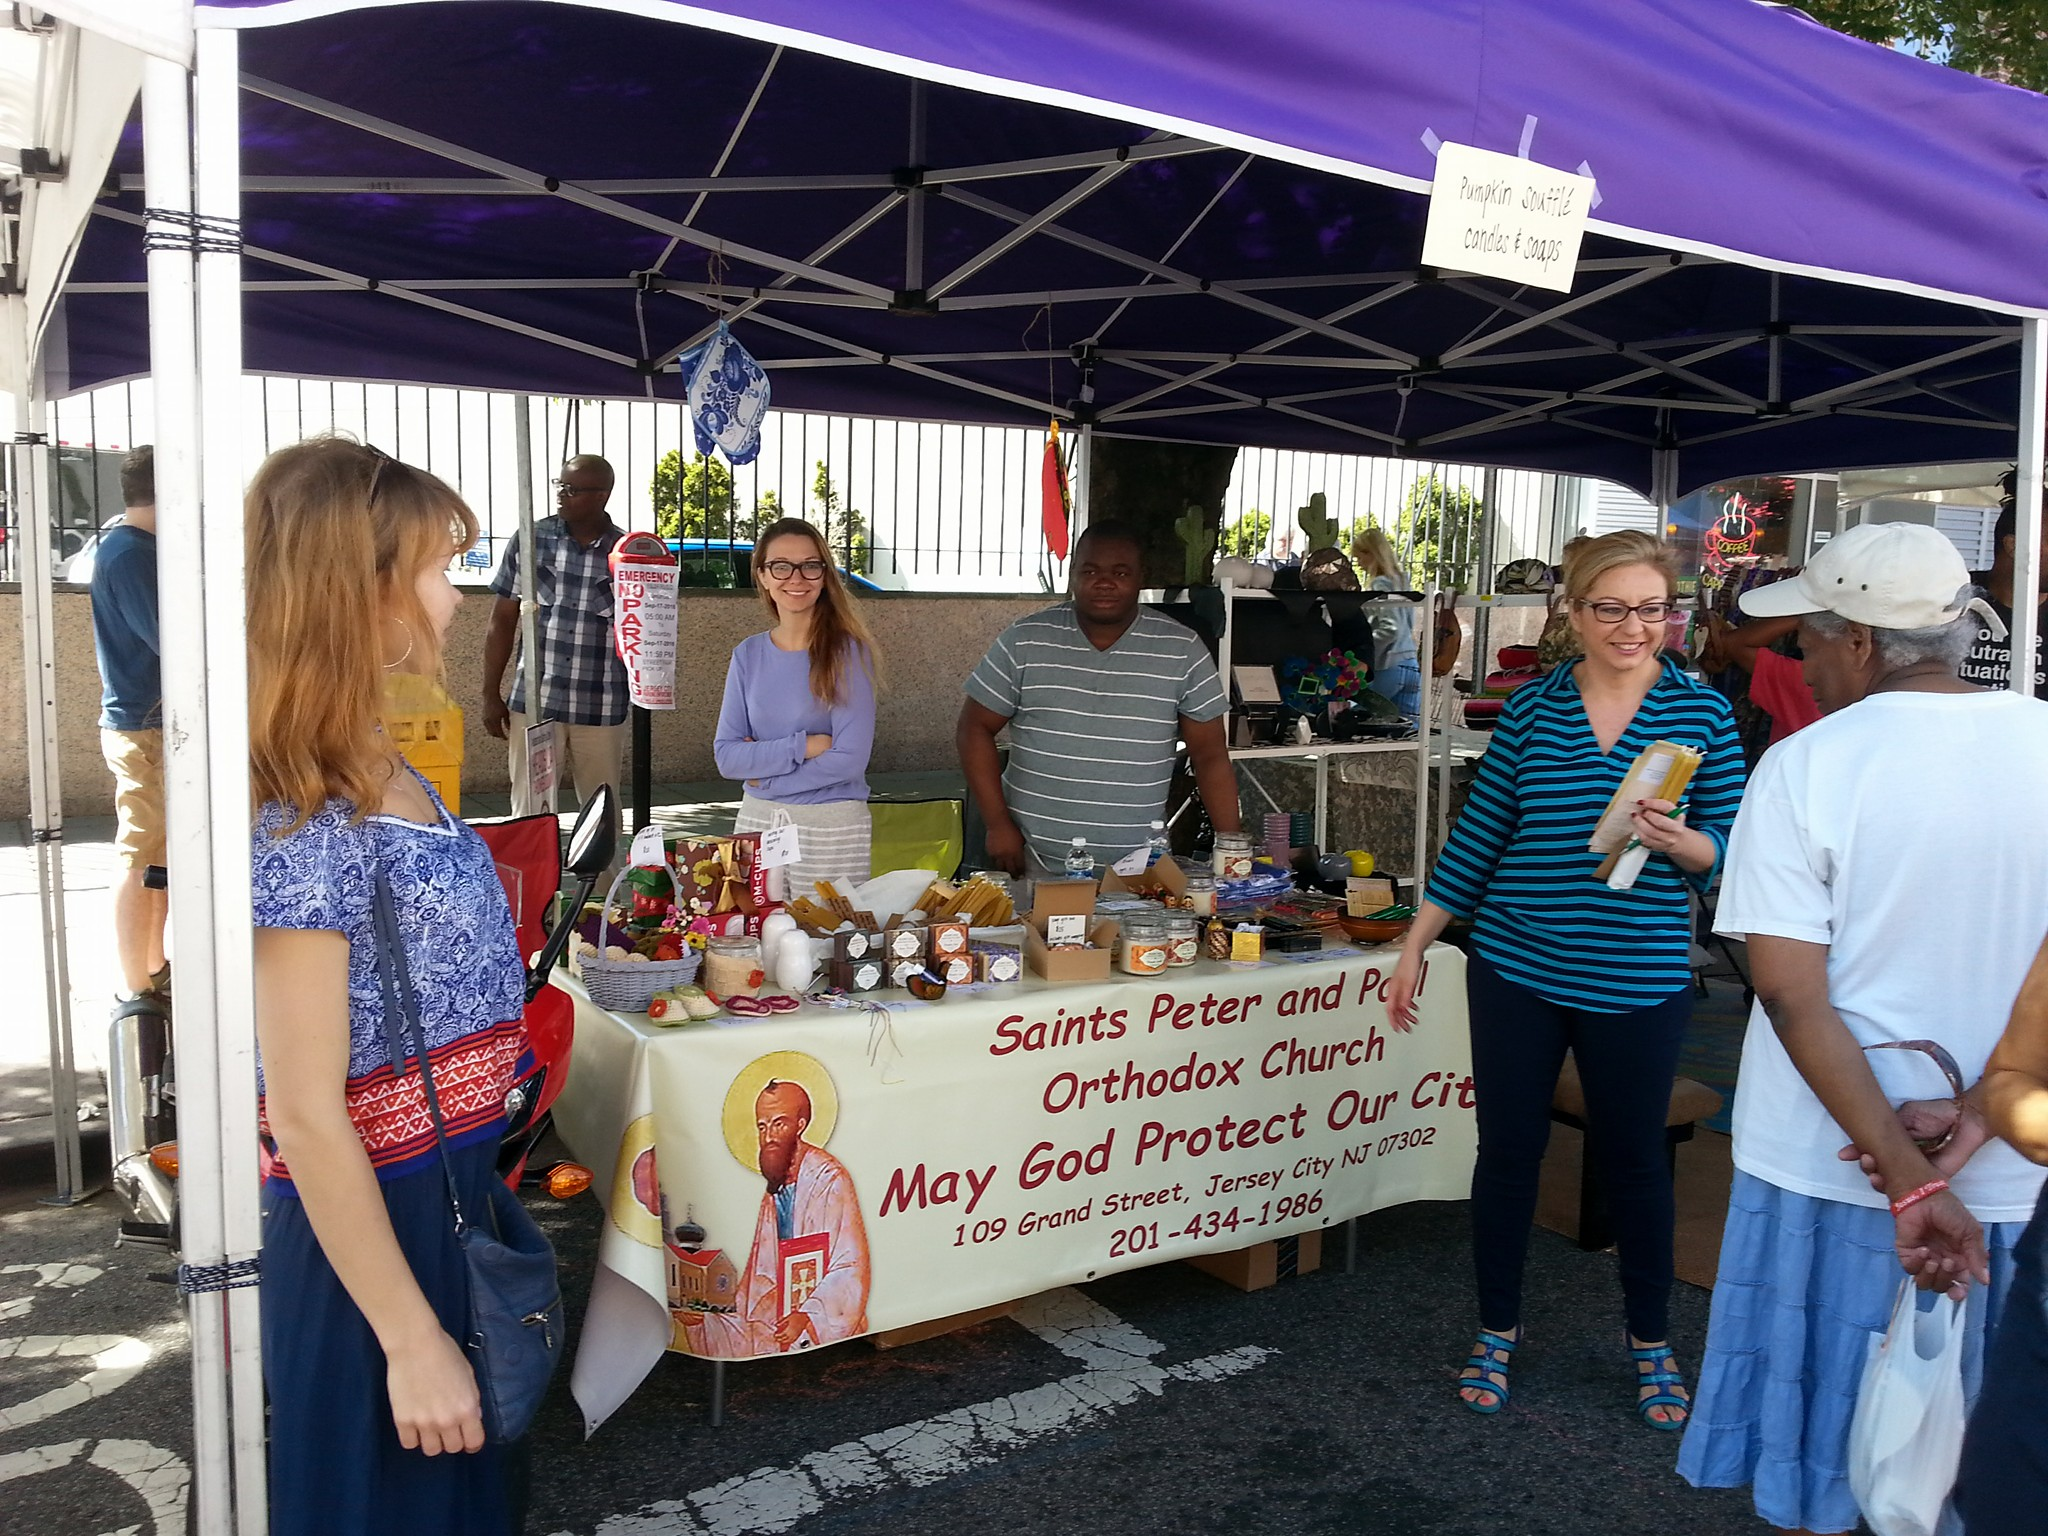 Parish Outreach Committee at an annual Jersey City event